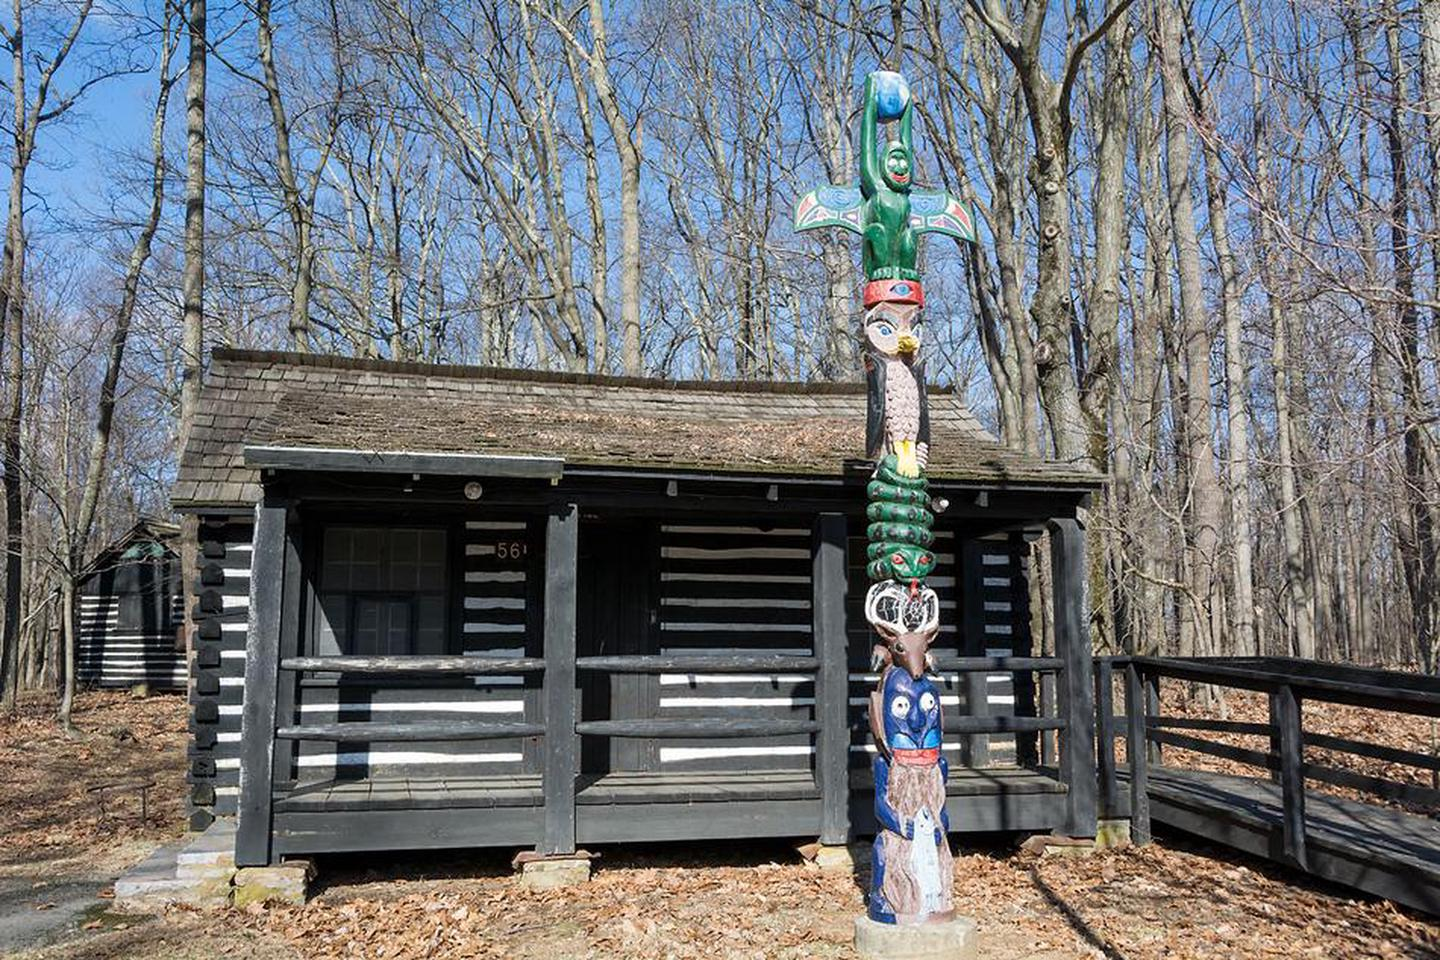 Camp GreentopThe Camp Greentop Office features a colorful totem poll.